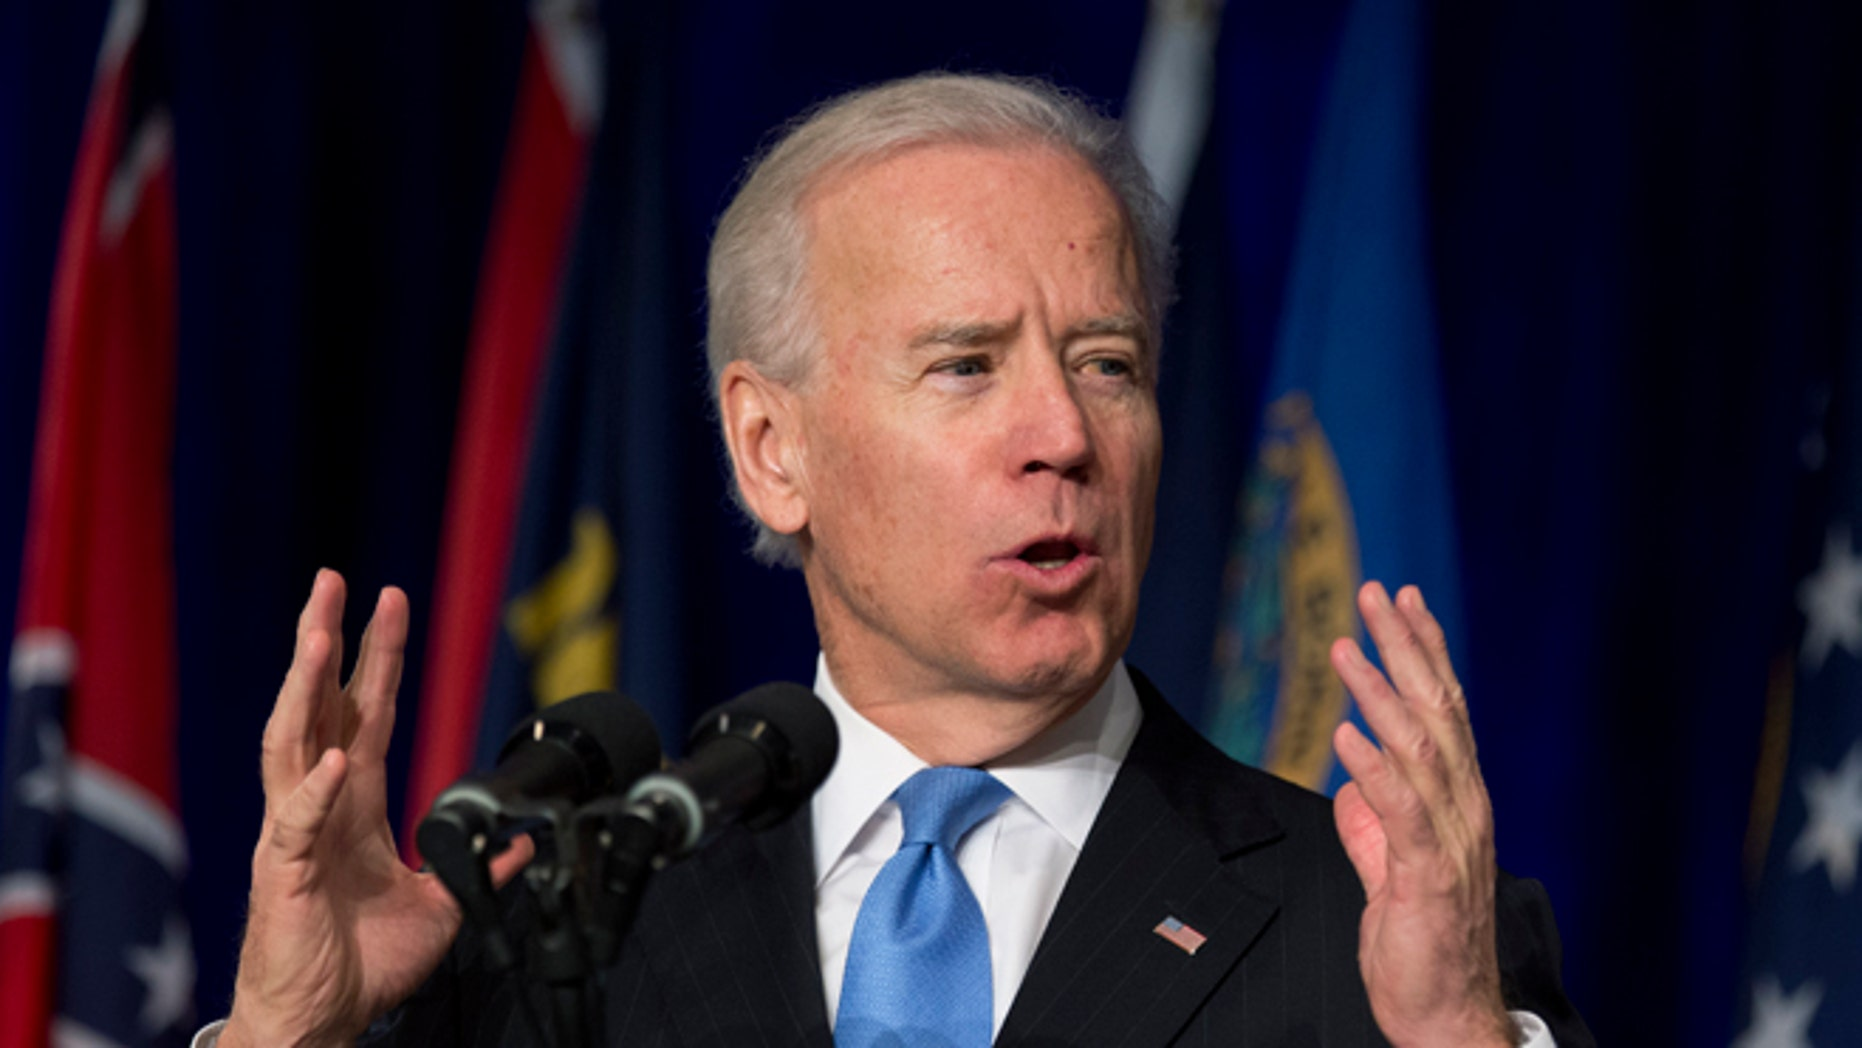 Feb. 27, 2013: Vice President Biden gestures as he speaks at the Winter-Spring meeting of the National Association of Attorneys General.